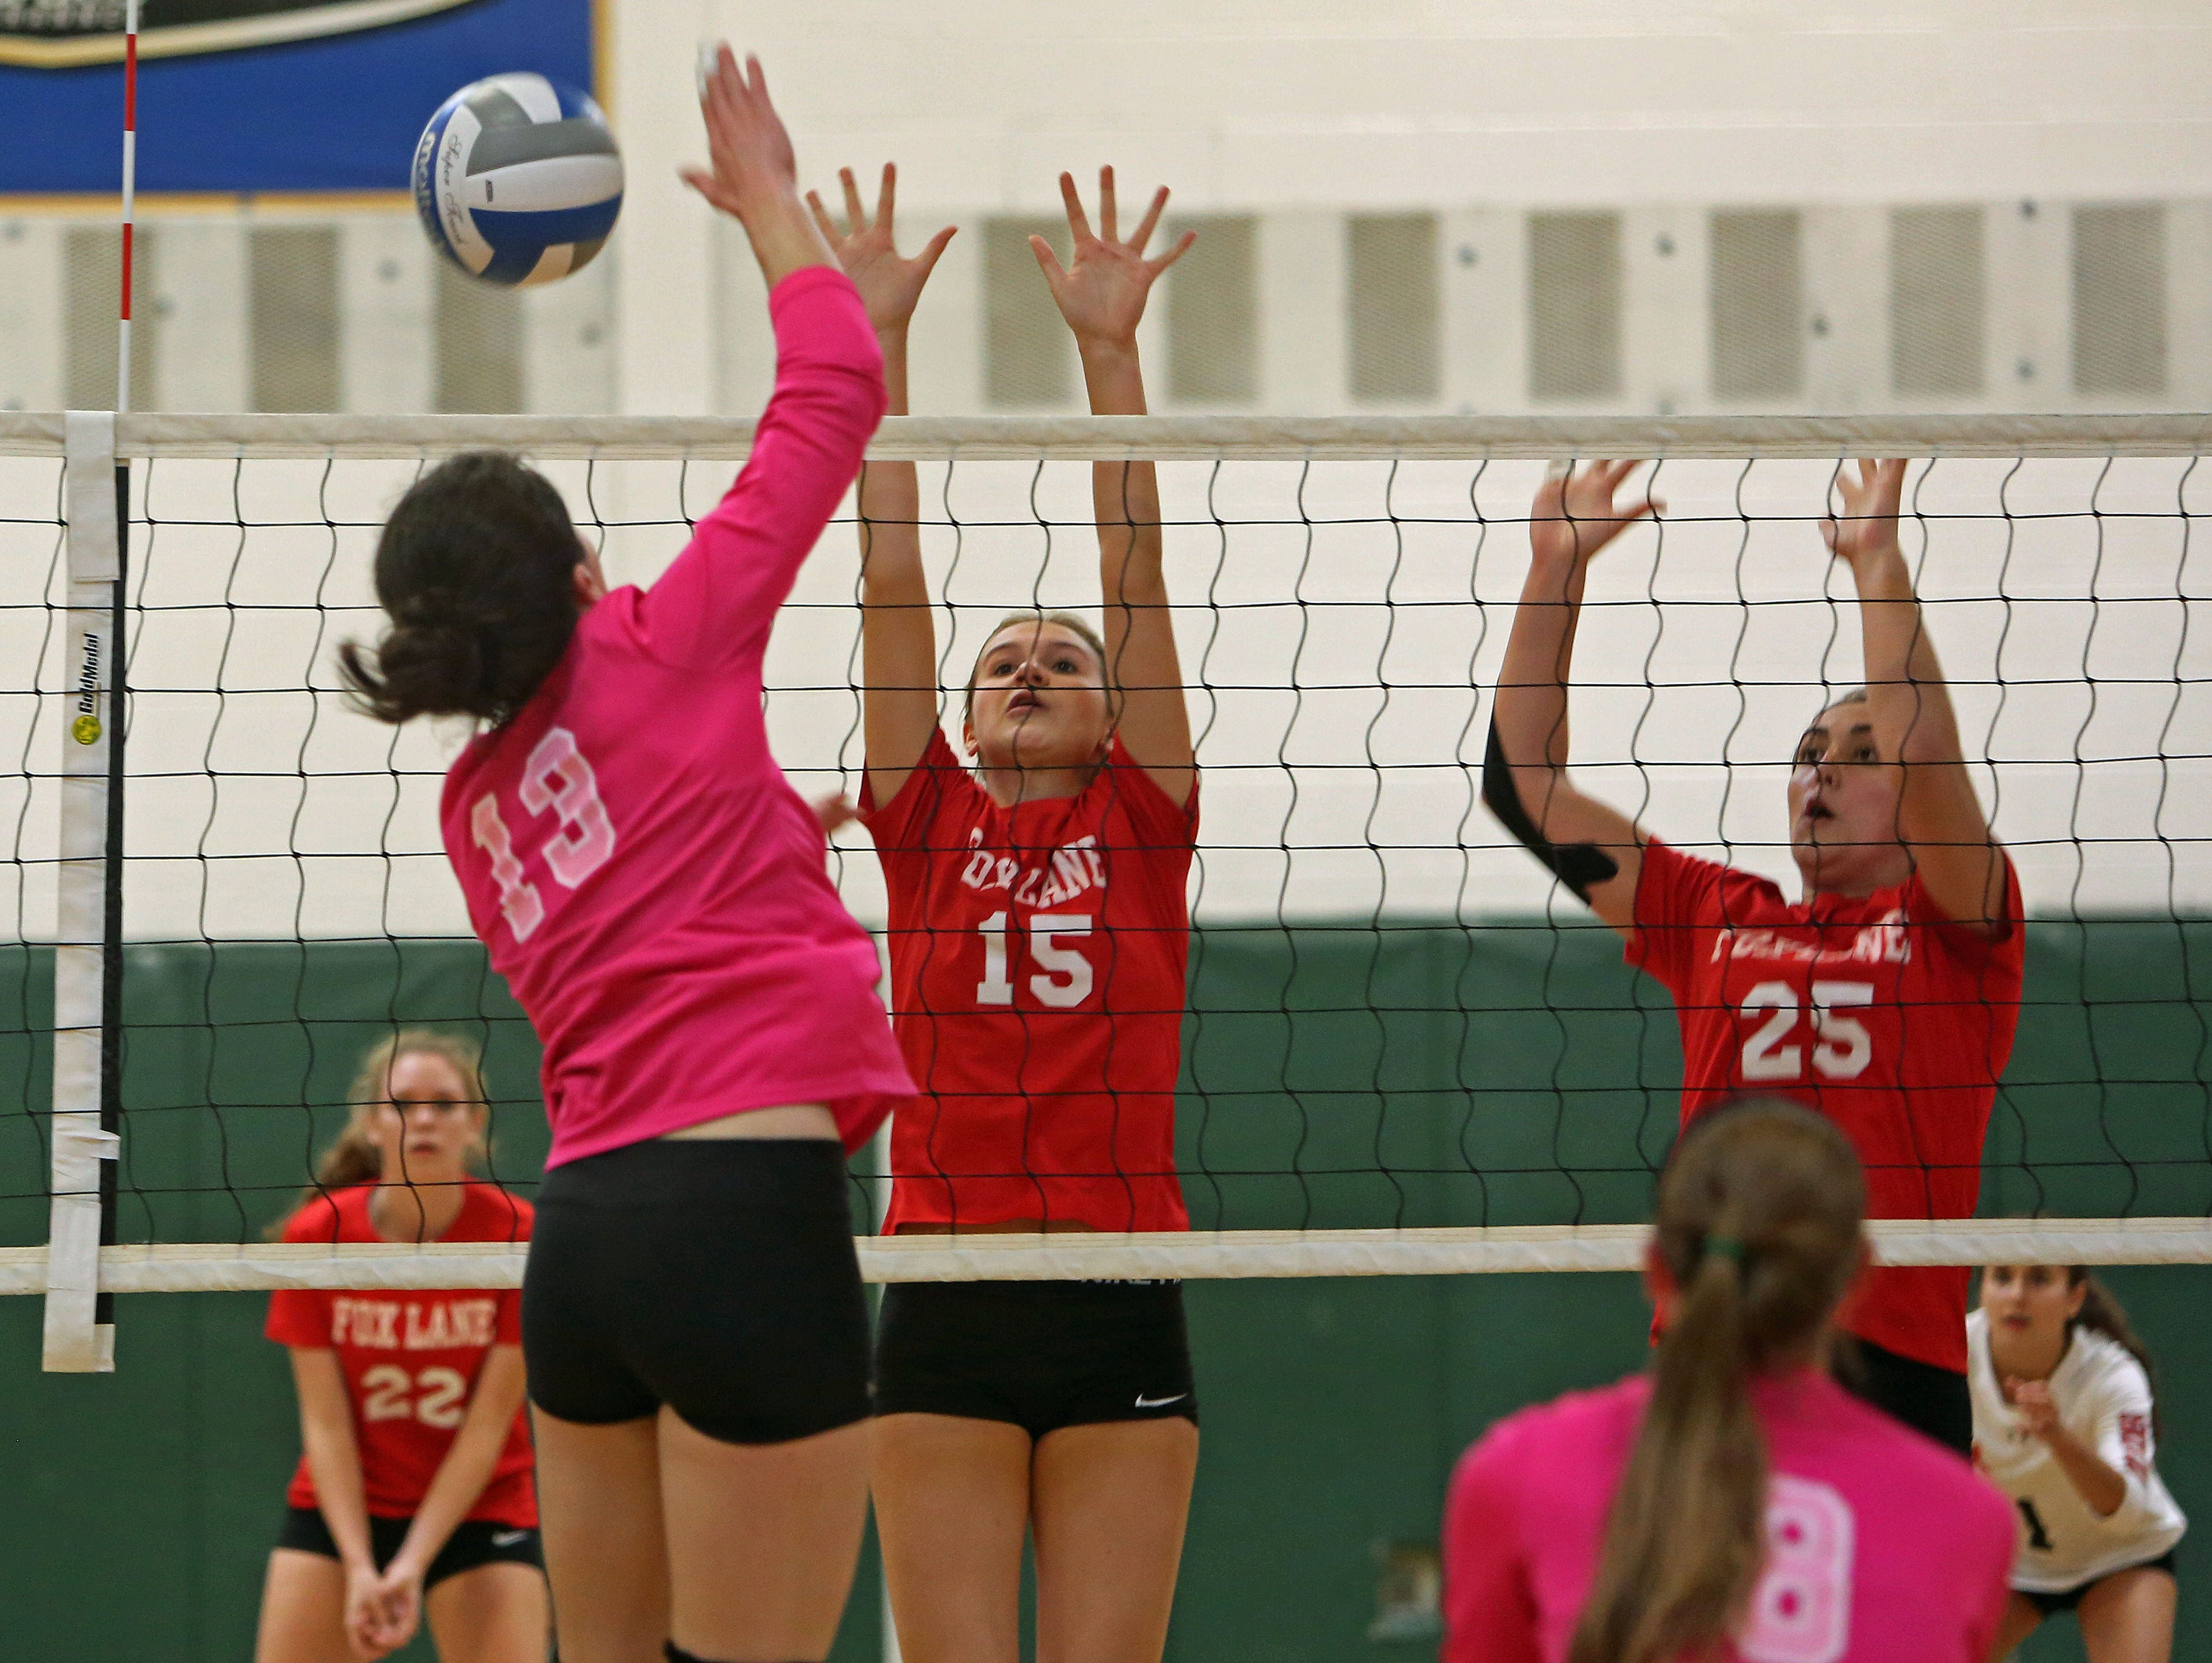 From left, Brewster's Frannie Merkel (13) tries to get a shot by Fox Lane's Kate Alexander (15) and Maria Violante (25) during volleyball action at Brewster High School Oct. 22, 2015. Fox Lane swept Brewster 25-23, 25-23, and 25-16.